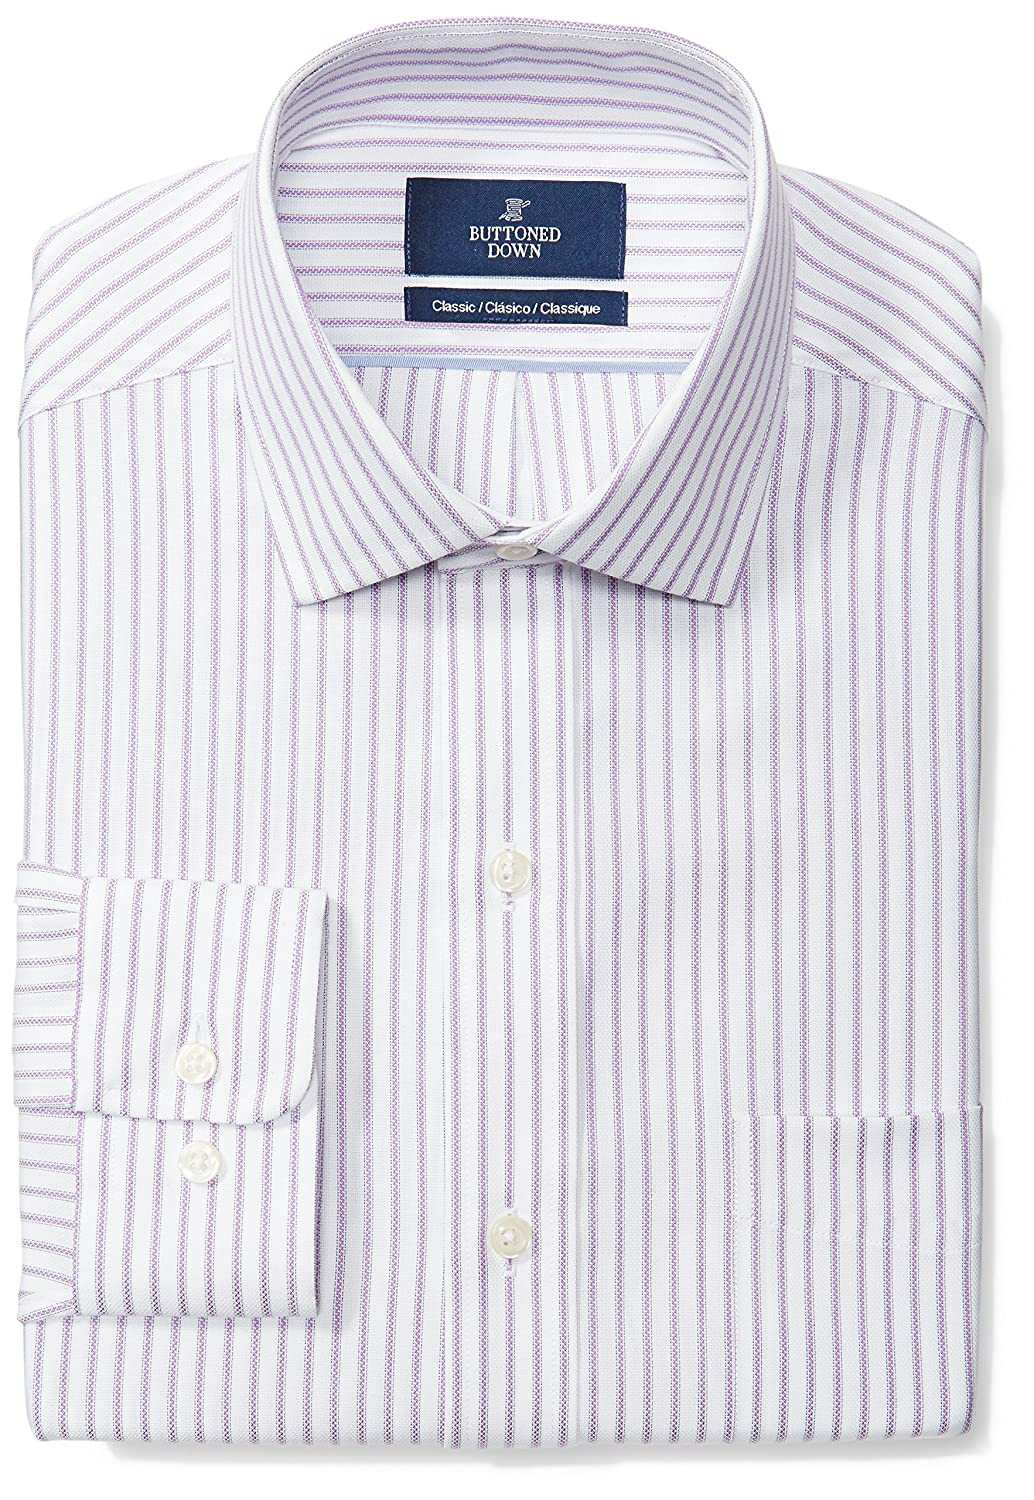 Buttoned Down Men's Classic Fit Non-Iron Dress Shirt (Discontinued Patterns) MBD30001